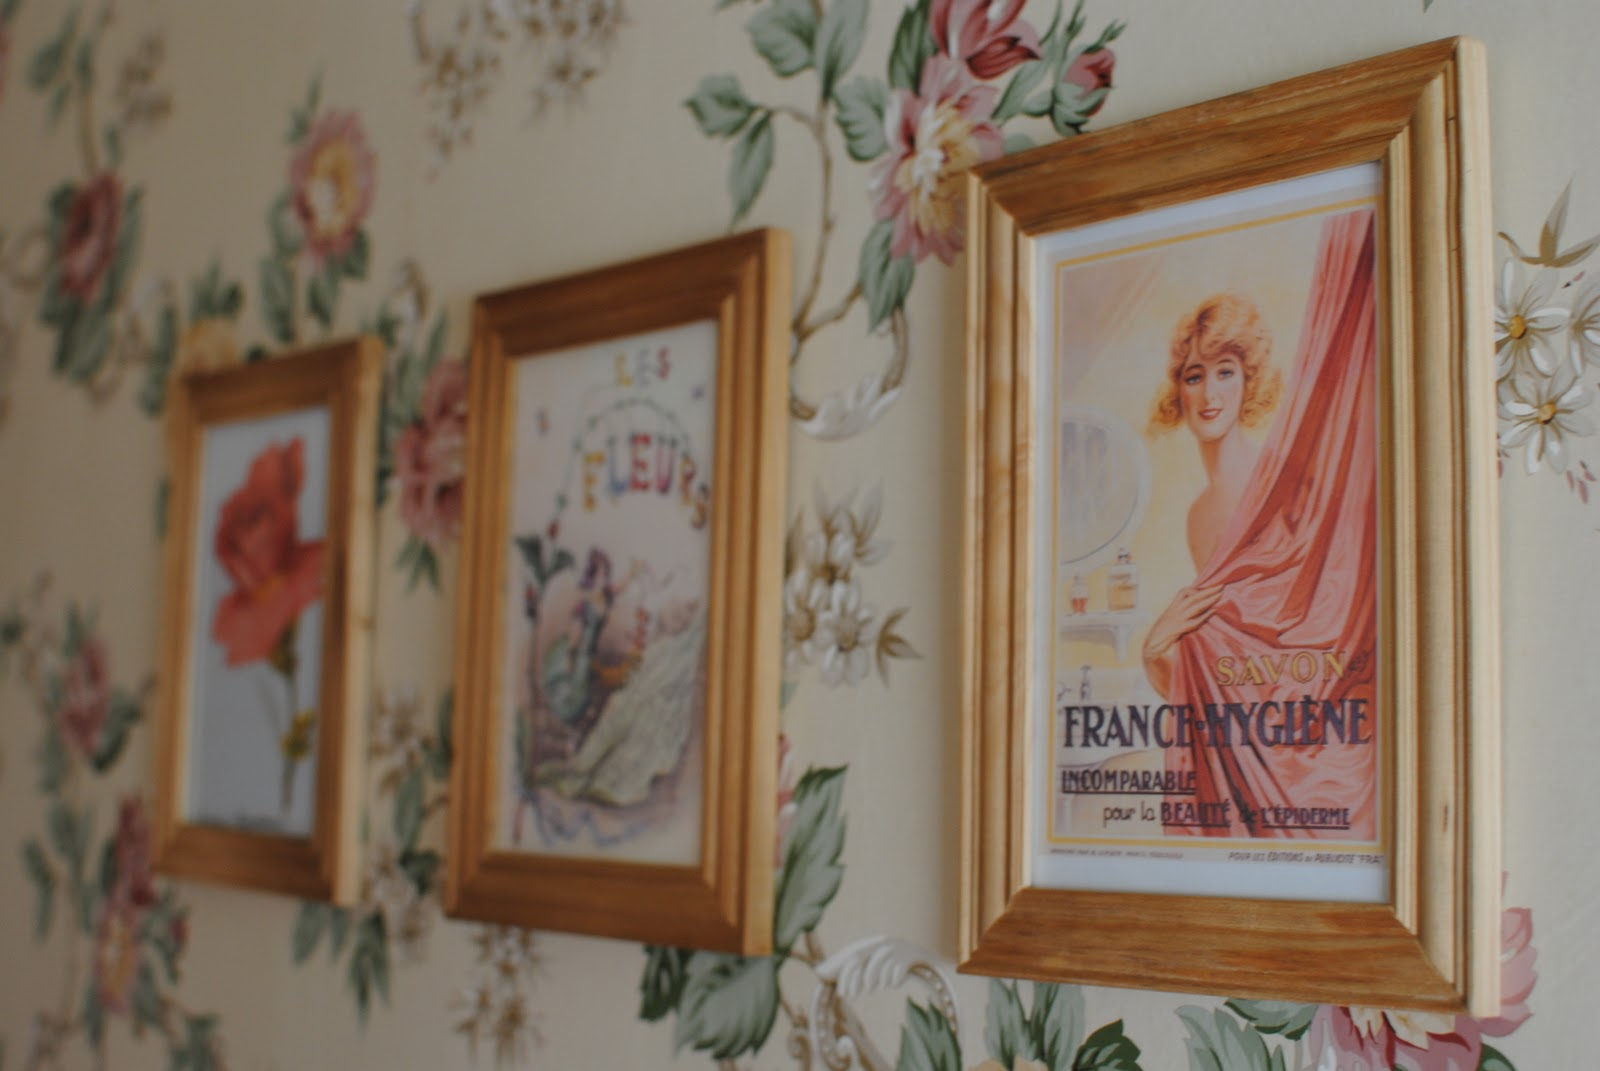 Vintage bathroom wall art - I Added A Few Framed Pieces Of Art To My Wall In Our Guest Bathroom Vintage Floral Wallpaper Came With The House